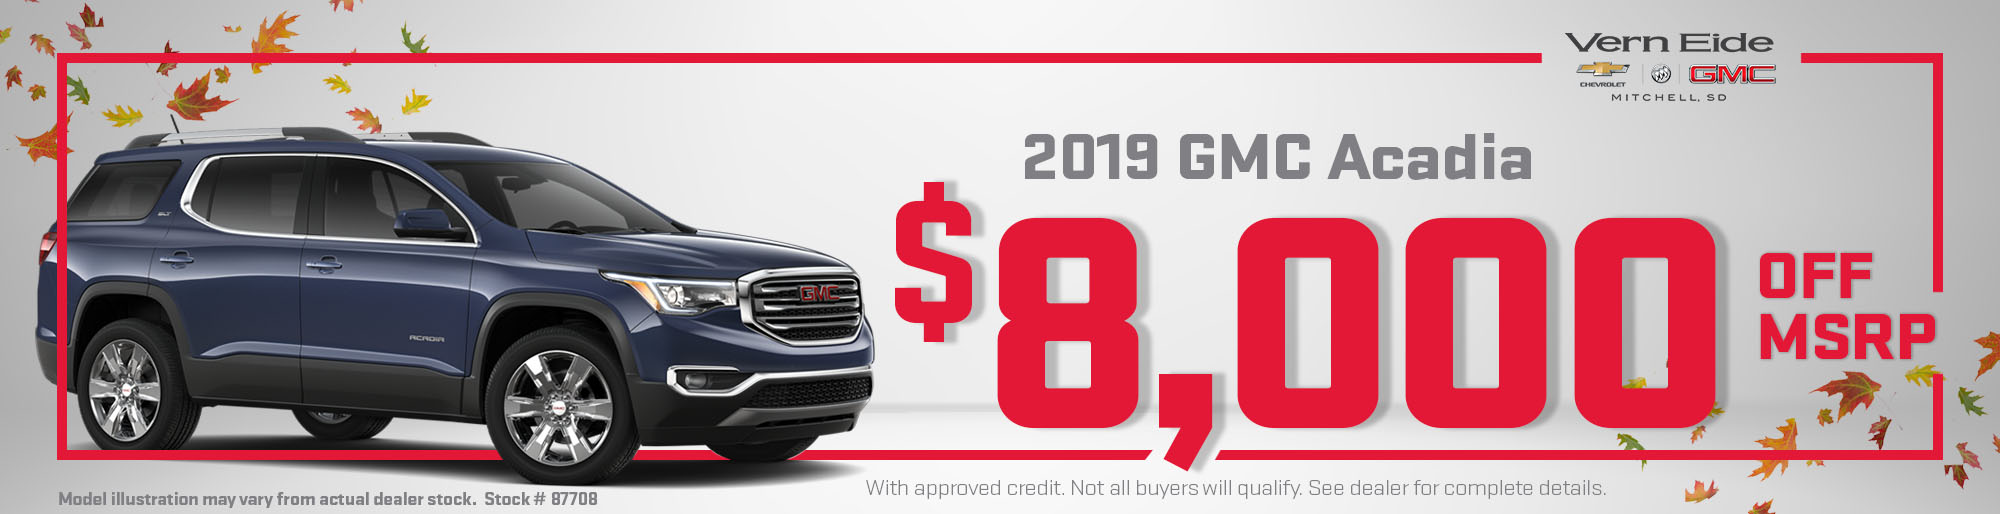 GMC Acadia 8k Off MSRP - October 2018